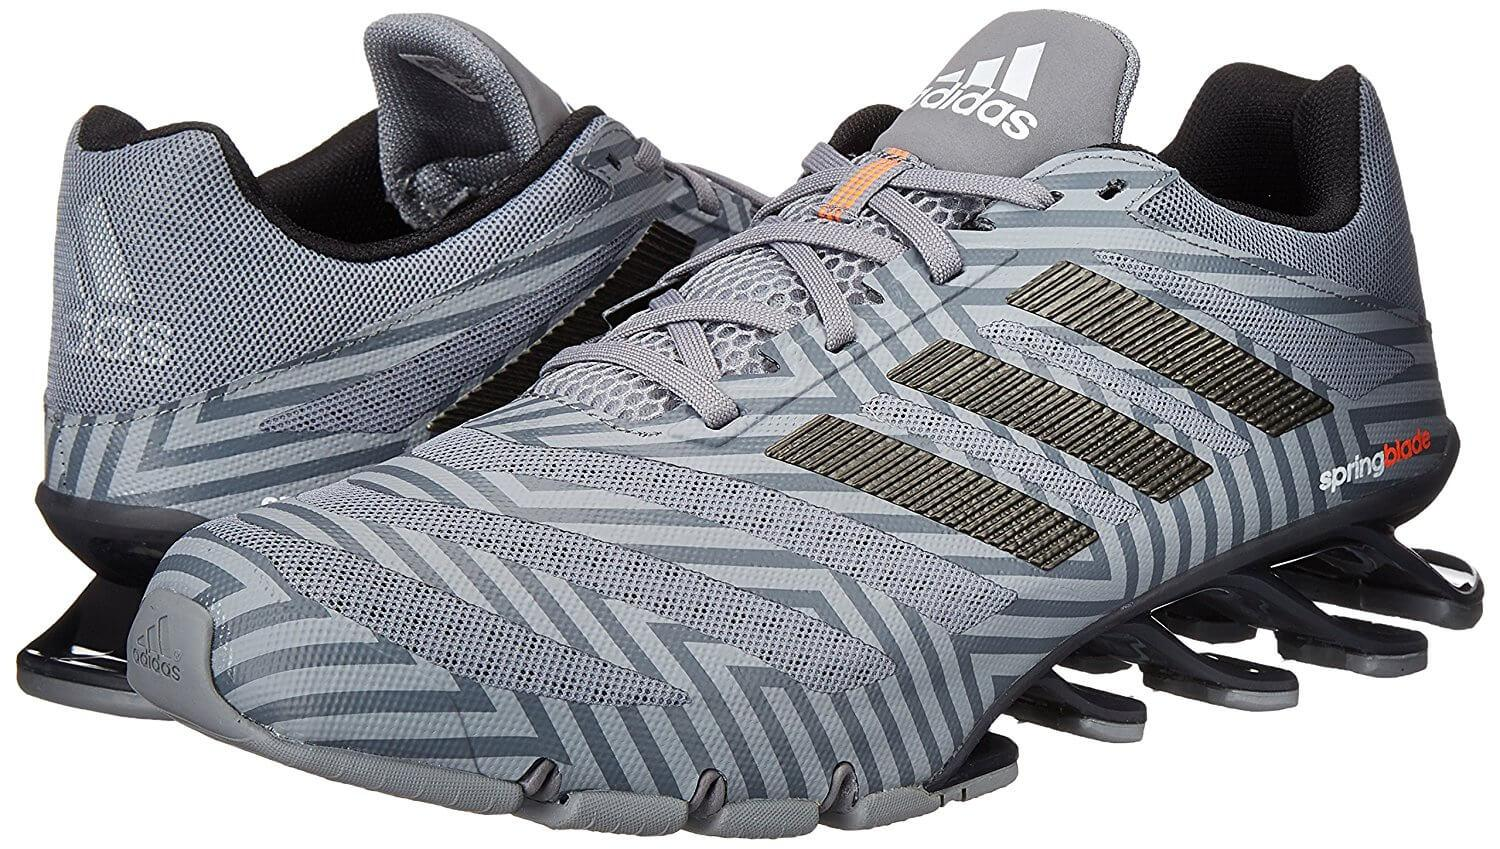 sale retailer a4b1e 086b1 Adidas Springblade Ignite - To Buy or Not in Sep 2019?